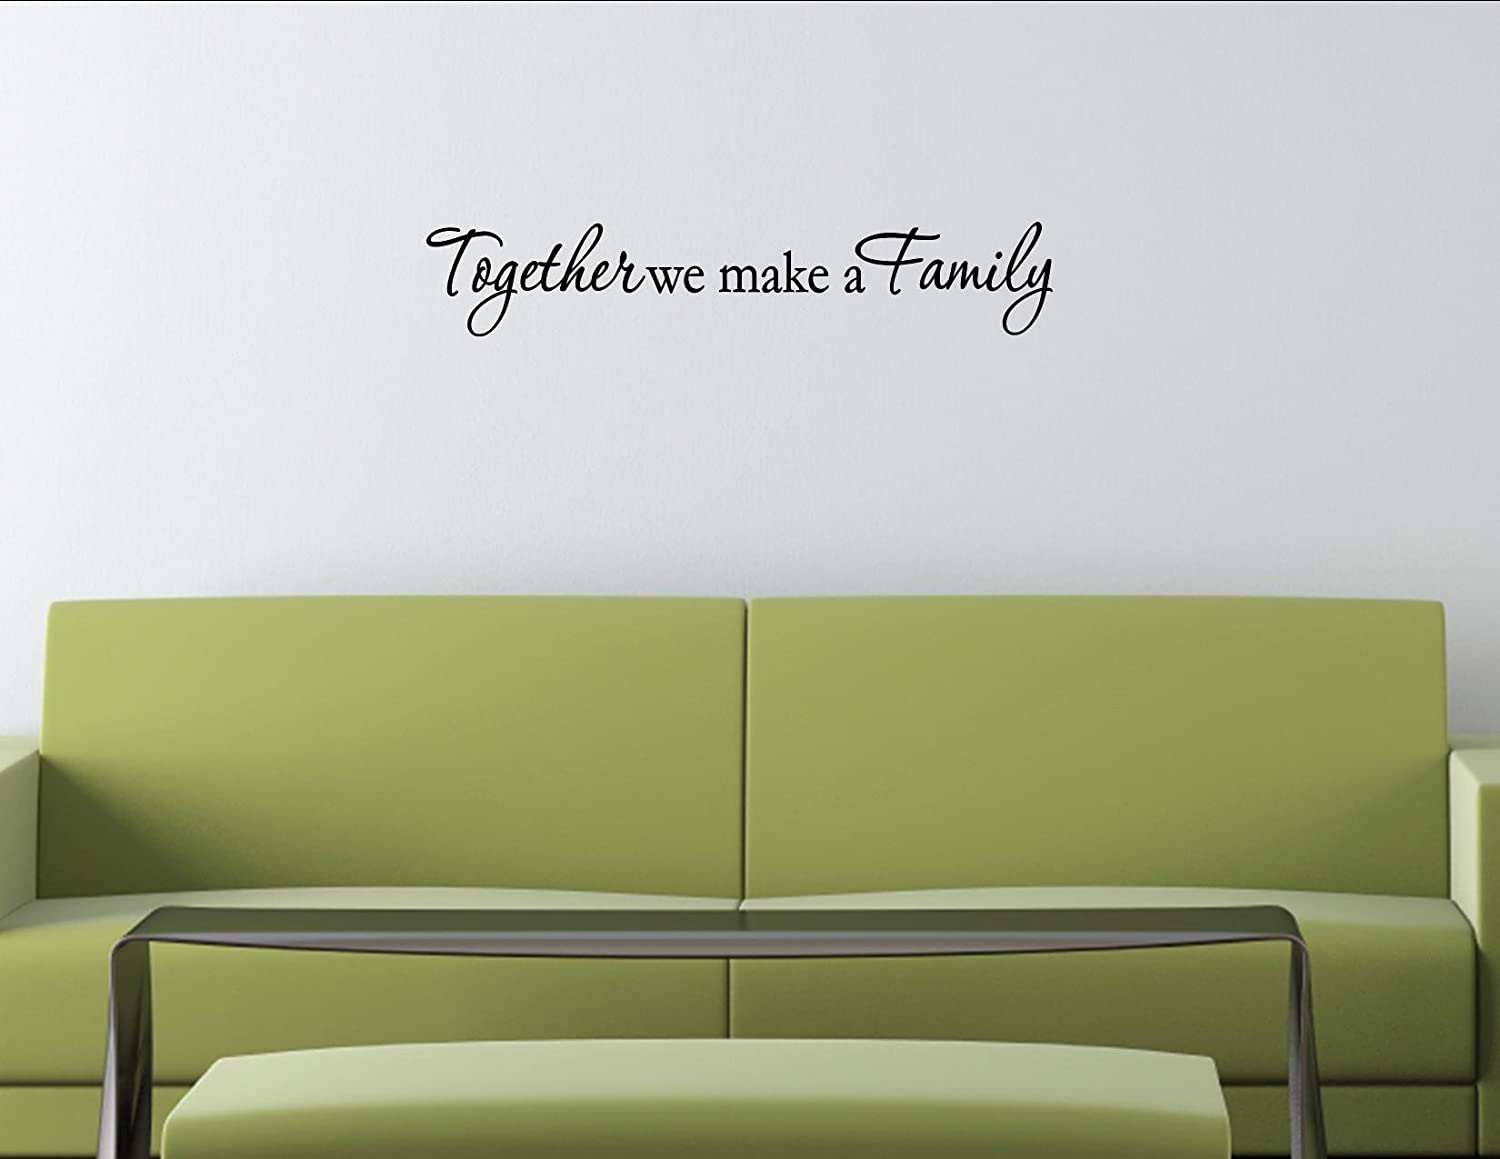 amazon com together we make a family vinyl wall decals quotes amazon com together we make a family vinyl wall decals quotes sayings words home kitchen